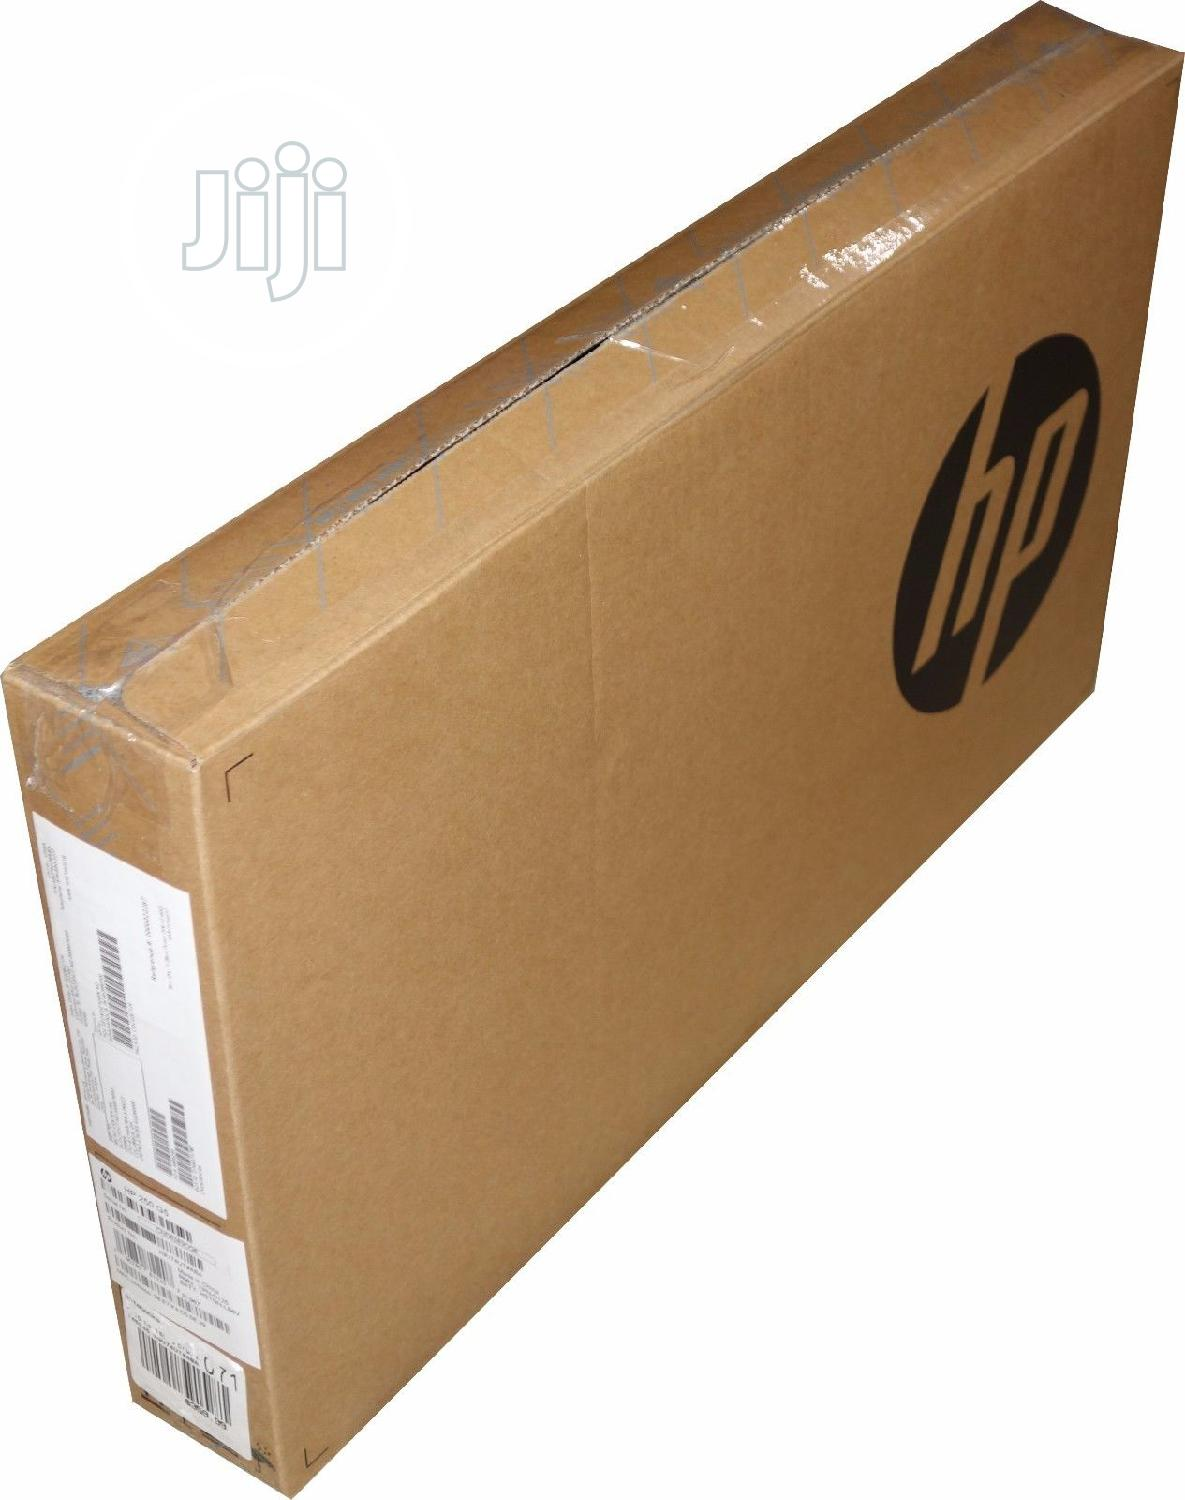 New Laptop HP Pavilion 15 4GB Intel Core I3 HDD 500GB   Laptops & Computers for sale in Ibeju, Lagos State, Nigeria